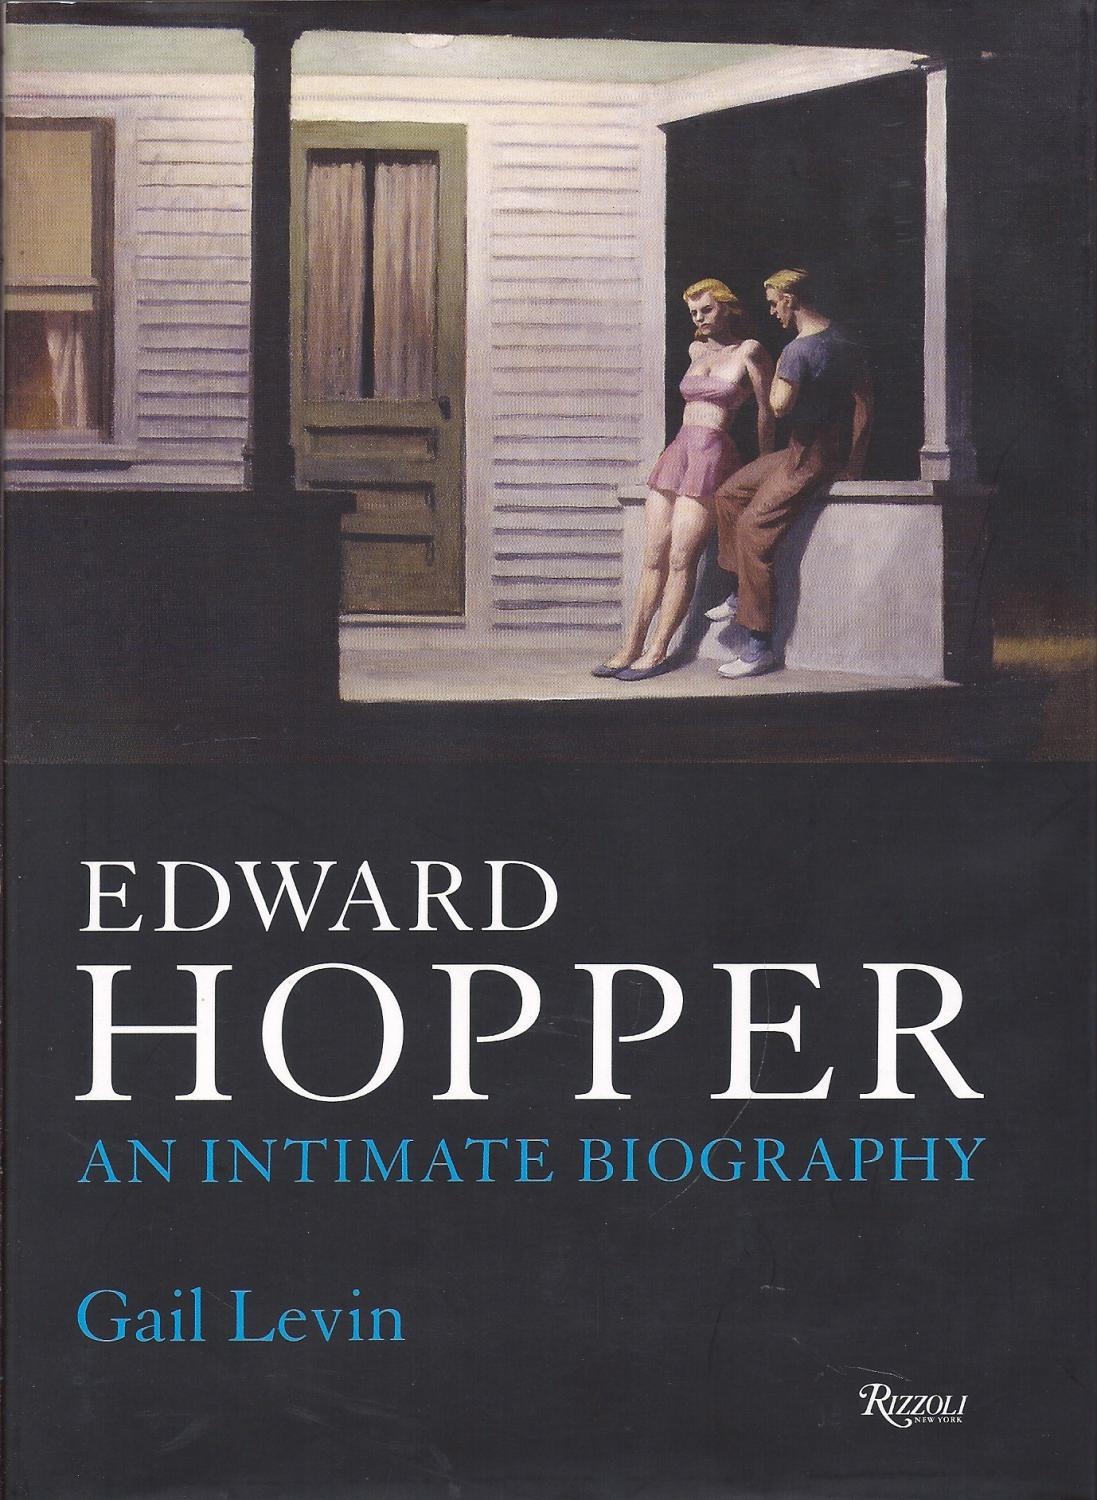 Erward Hopper An Intimate Biography  Updated and Expanded Edition